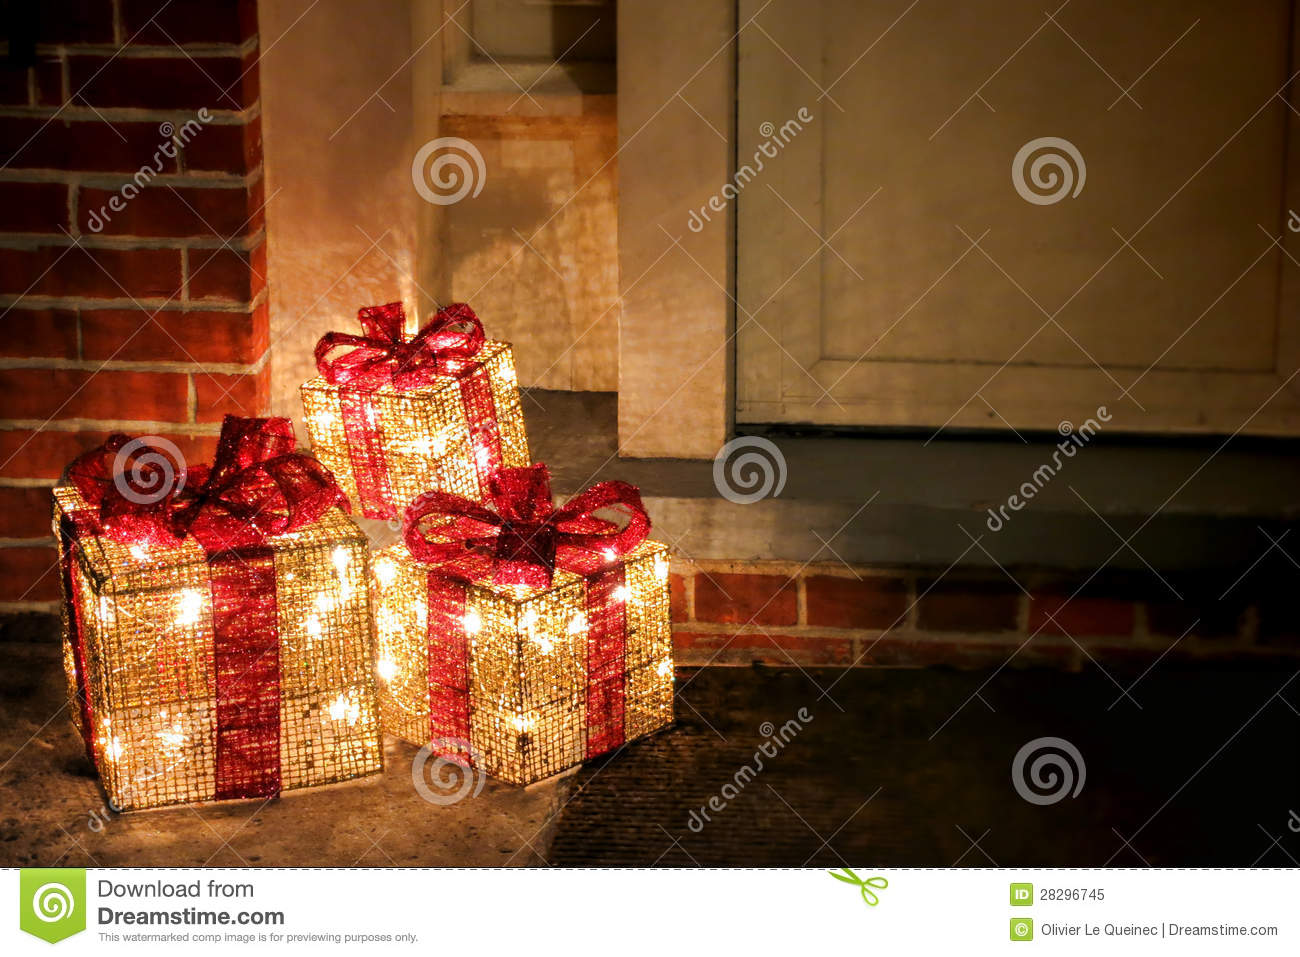 download lighted decorated christmas gifts boxes at doorway stock image image of door bows - Outdoor Lighted Presents Christmas Decorations